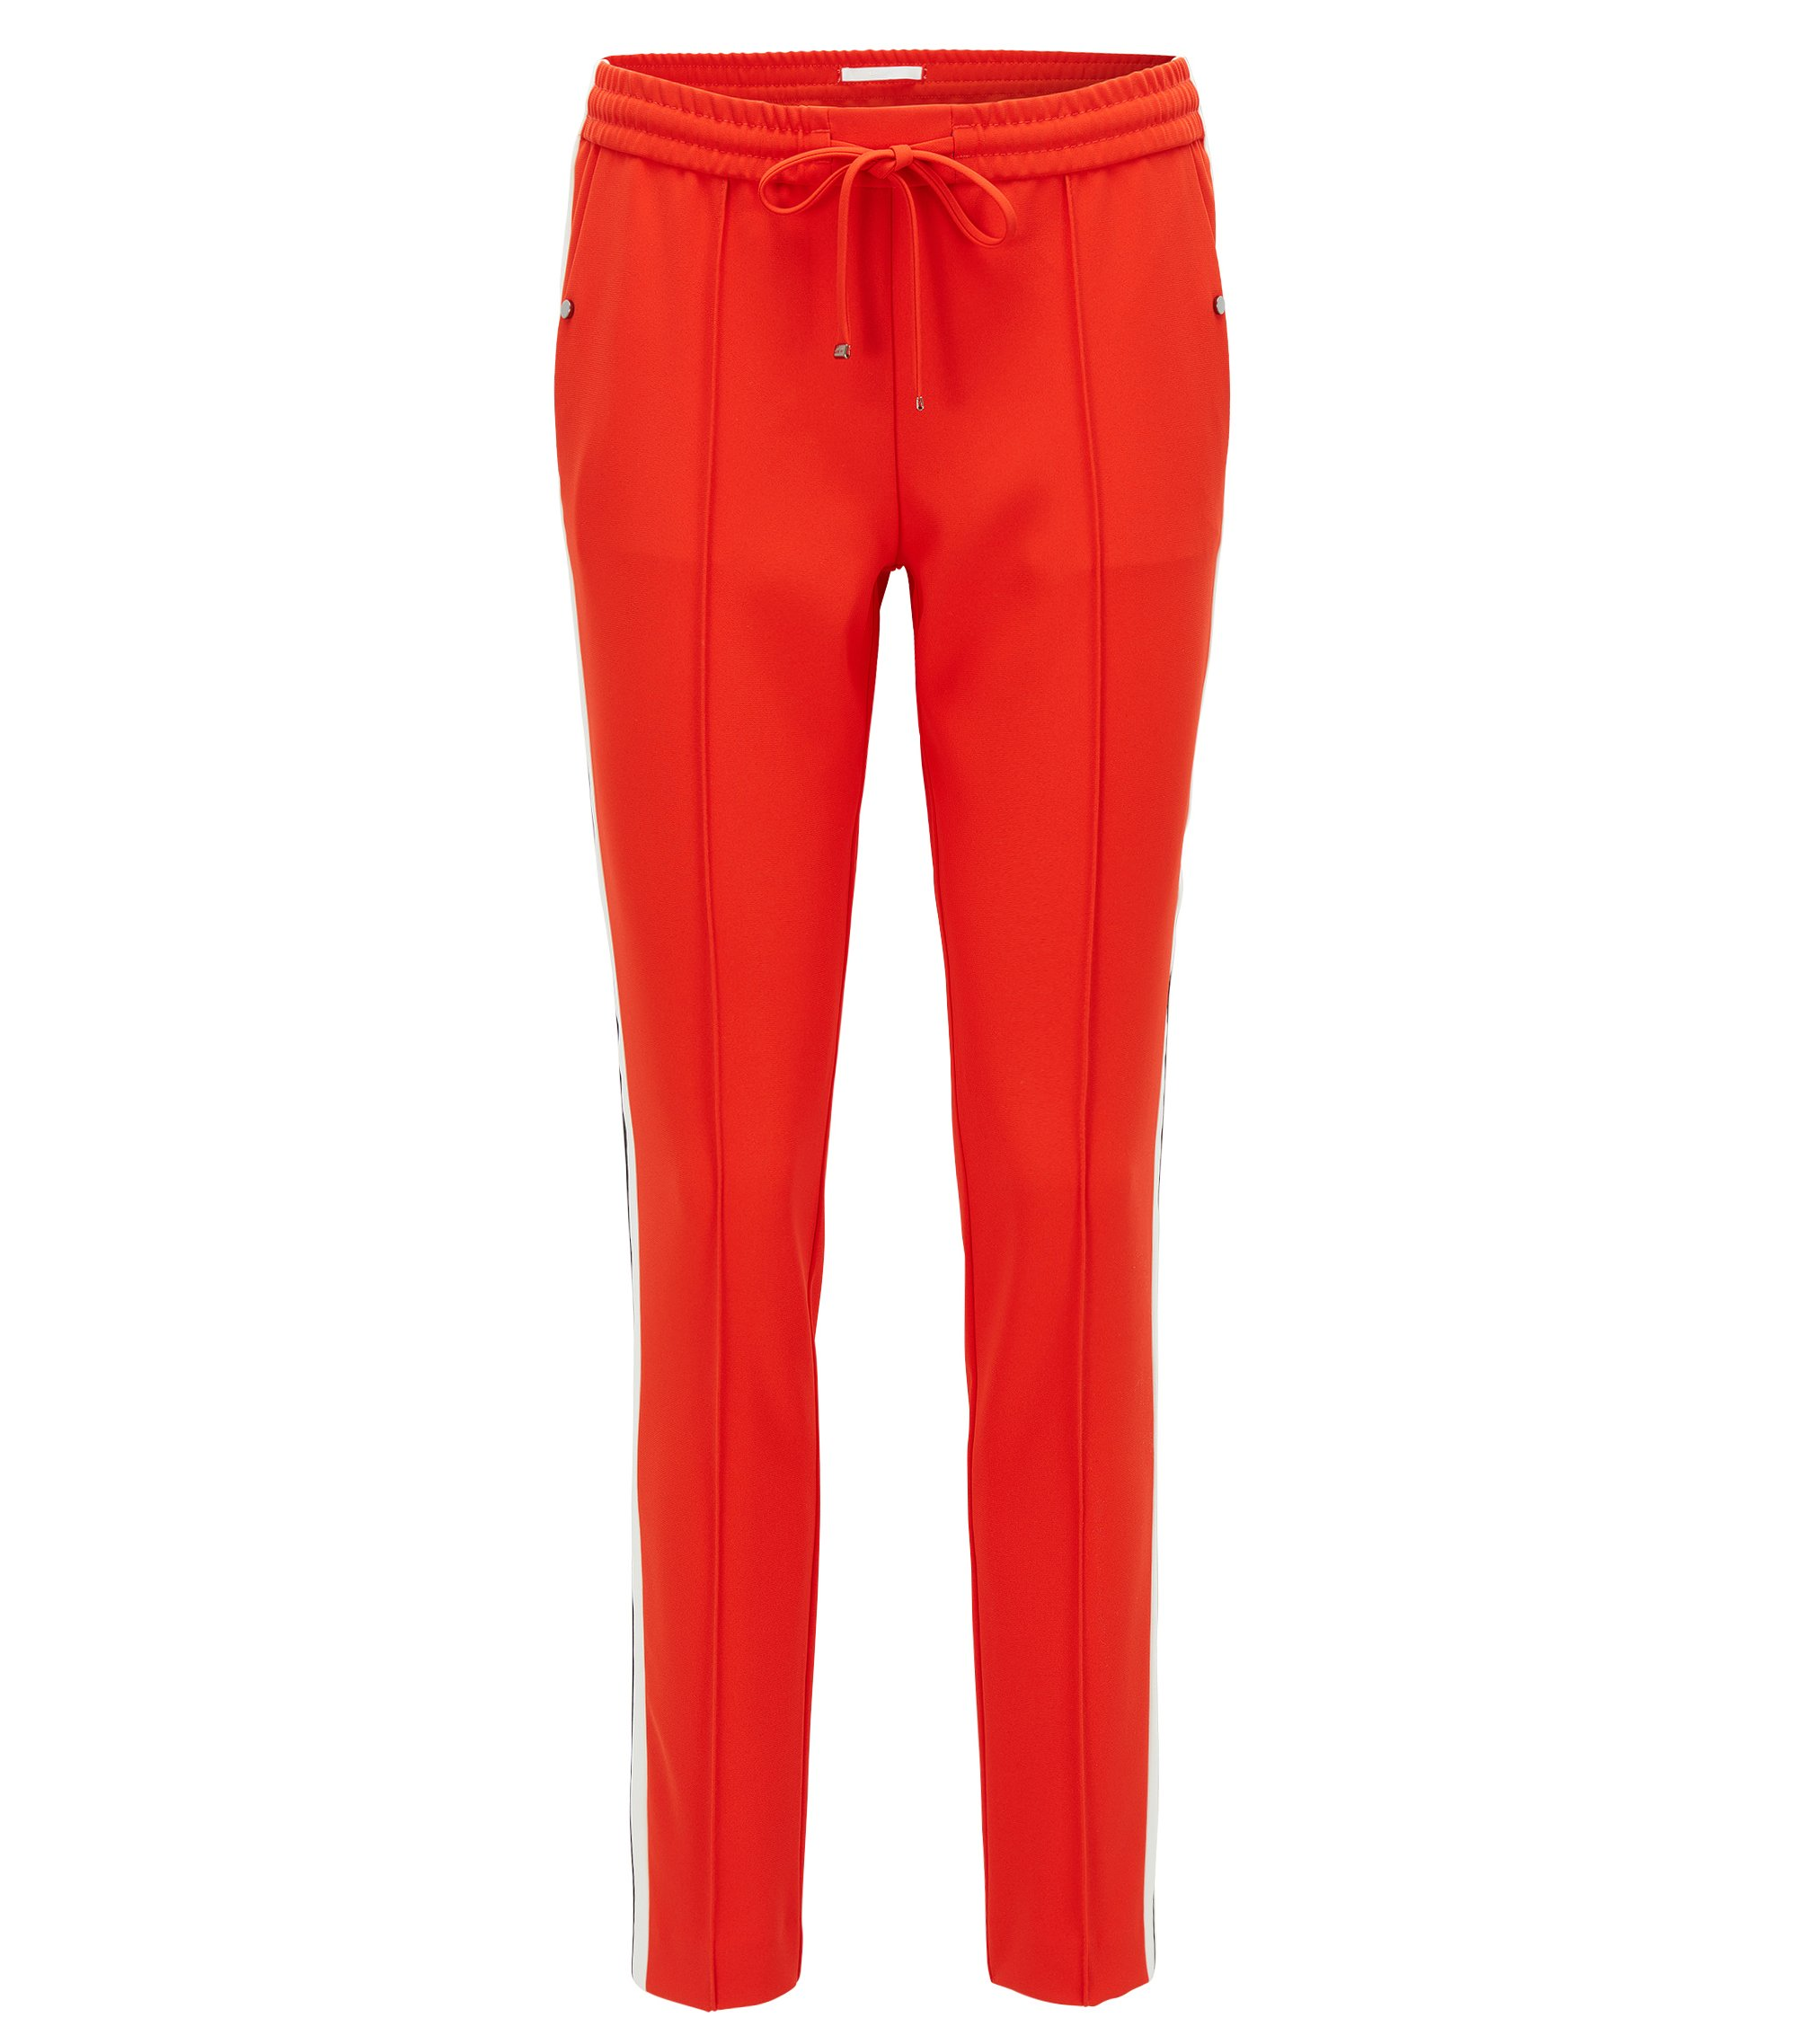 Relaxed-Fit Hose aus Funktions-Krepp, Rot